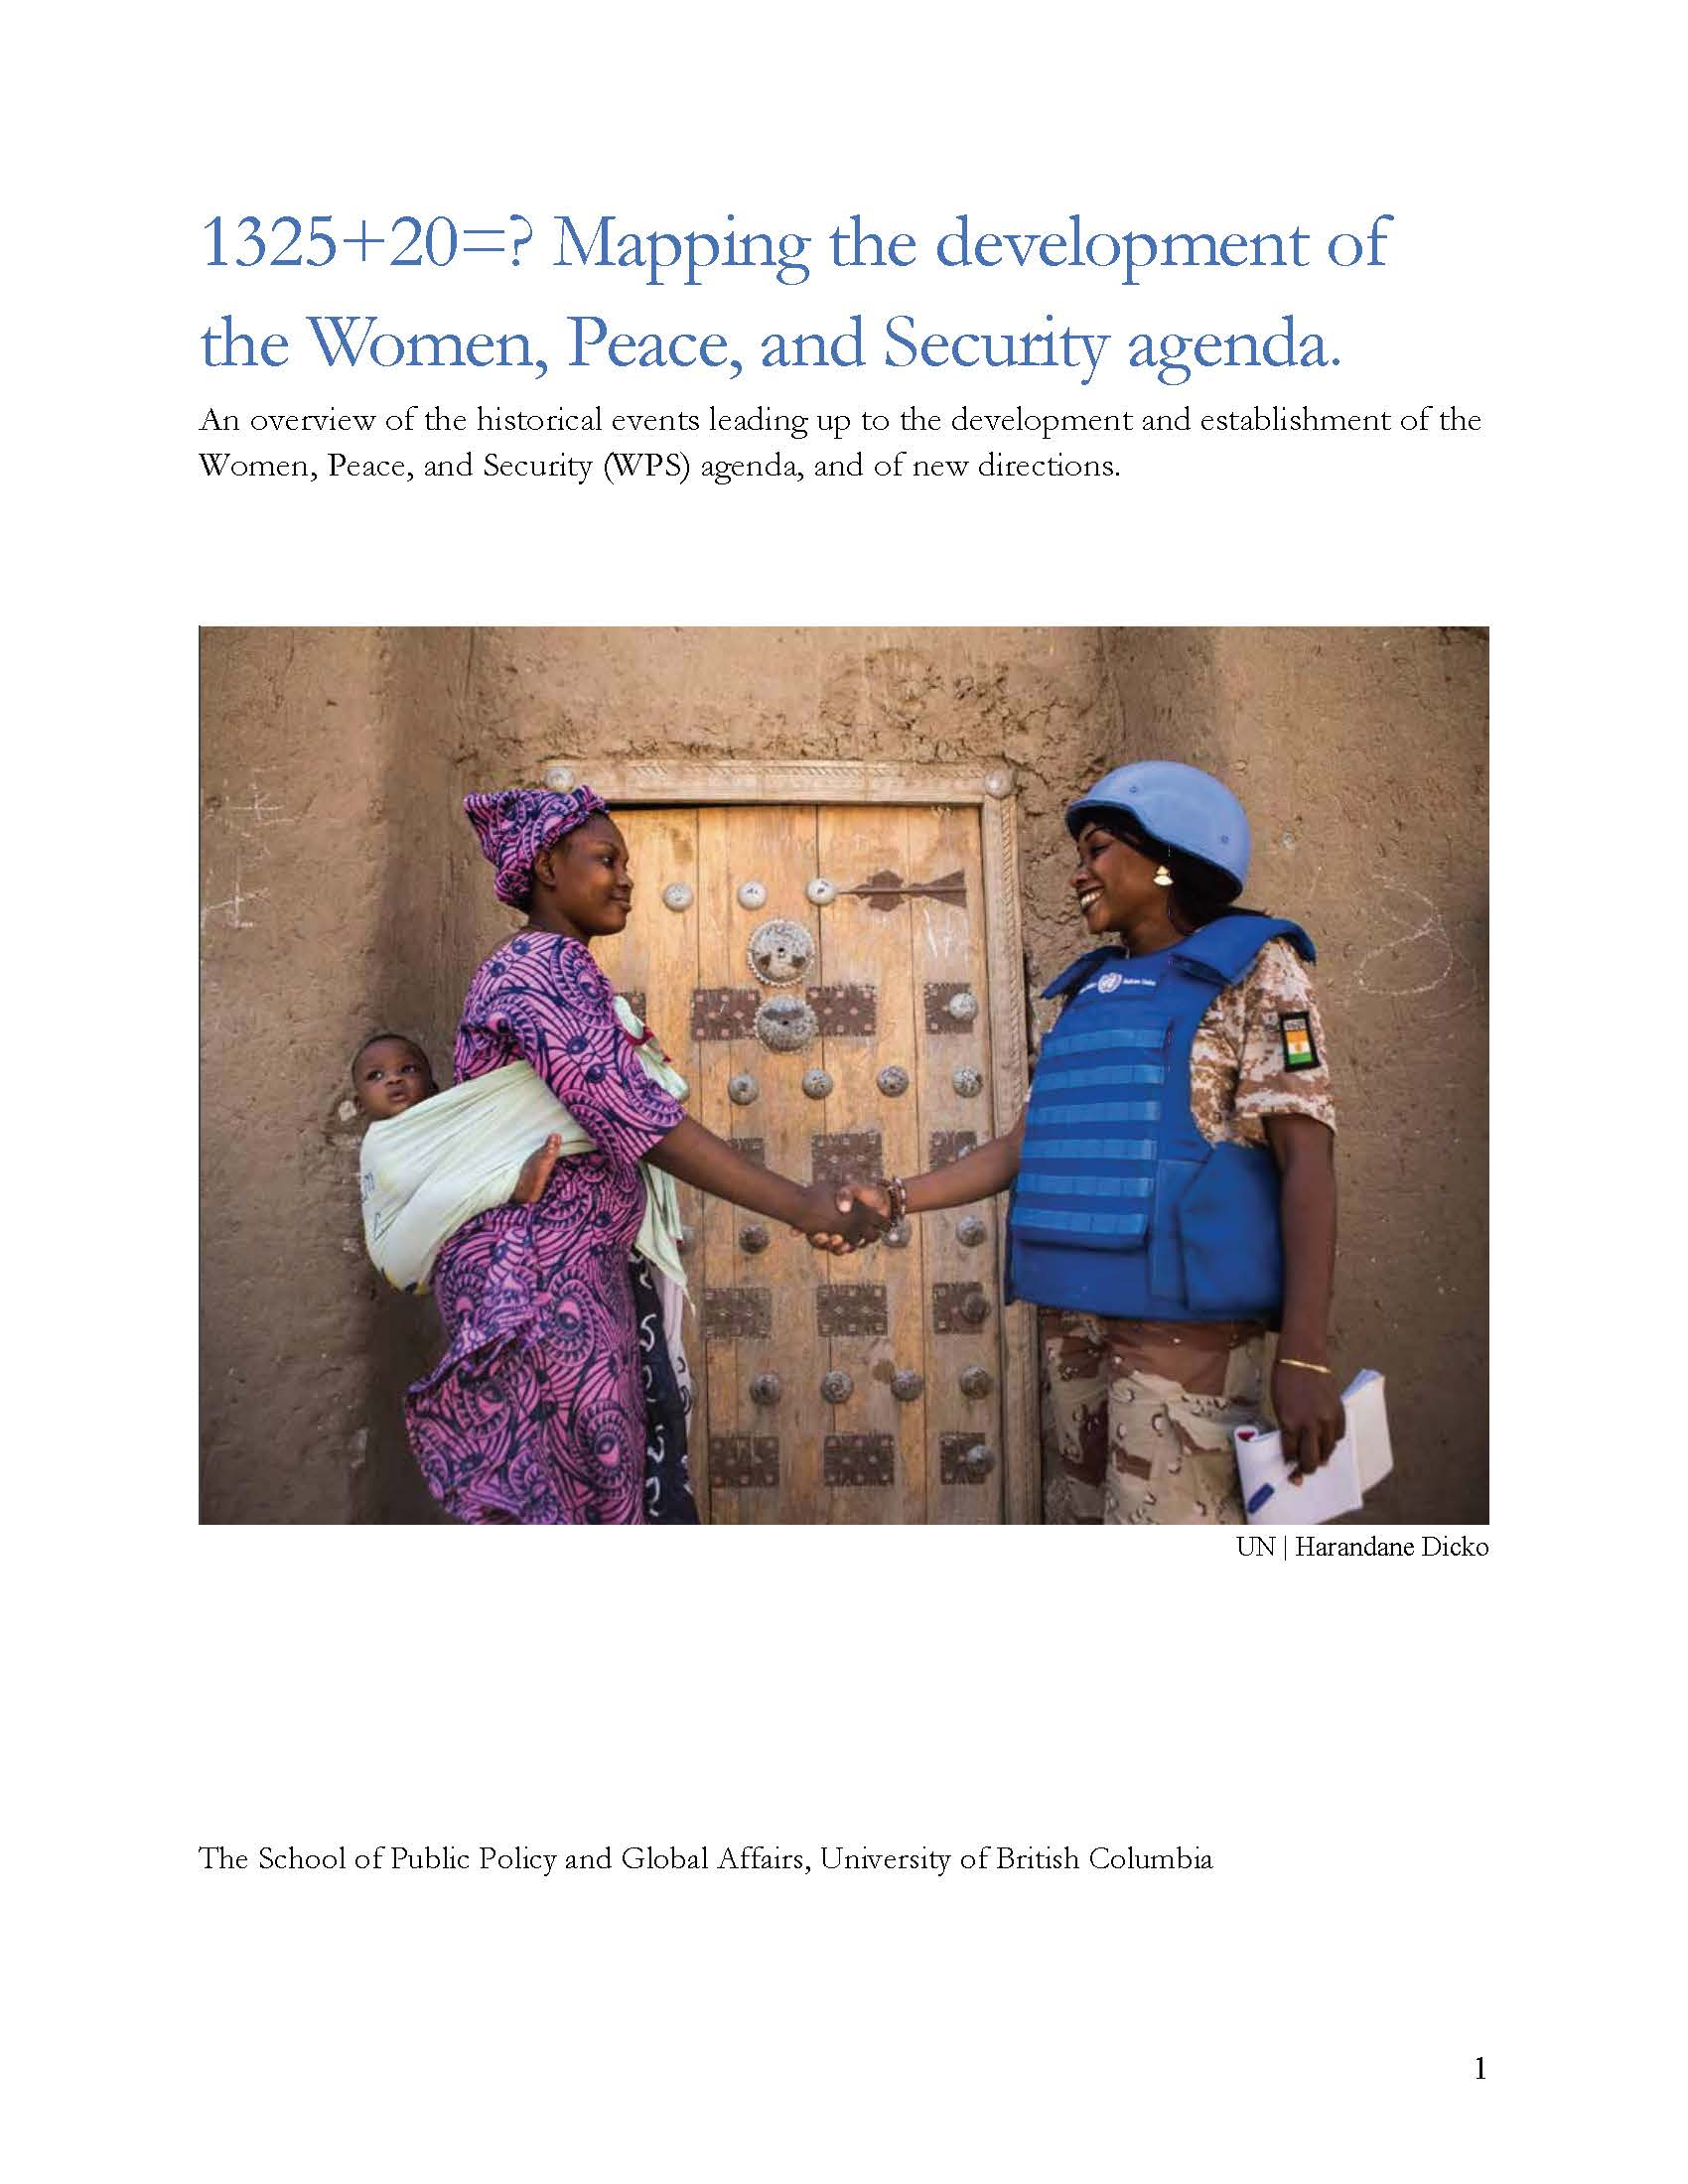 1325+20=? Mapping the development of the Women, Peace, and Security agenda